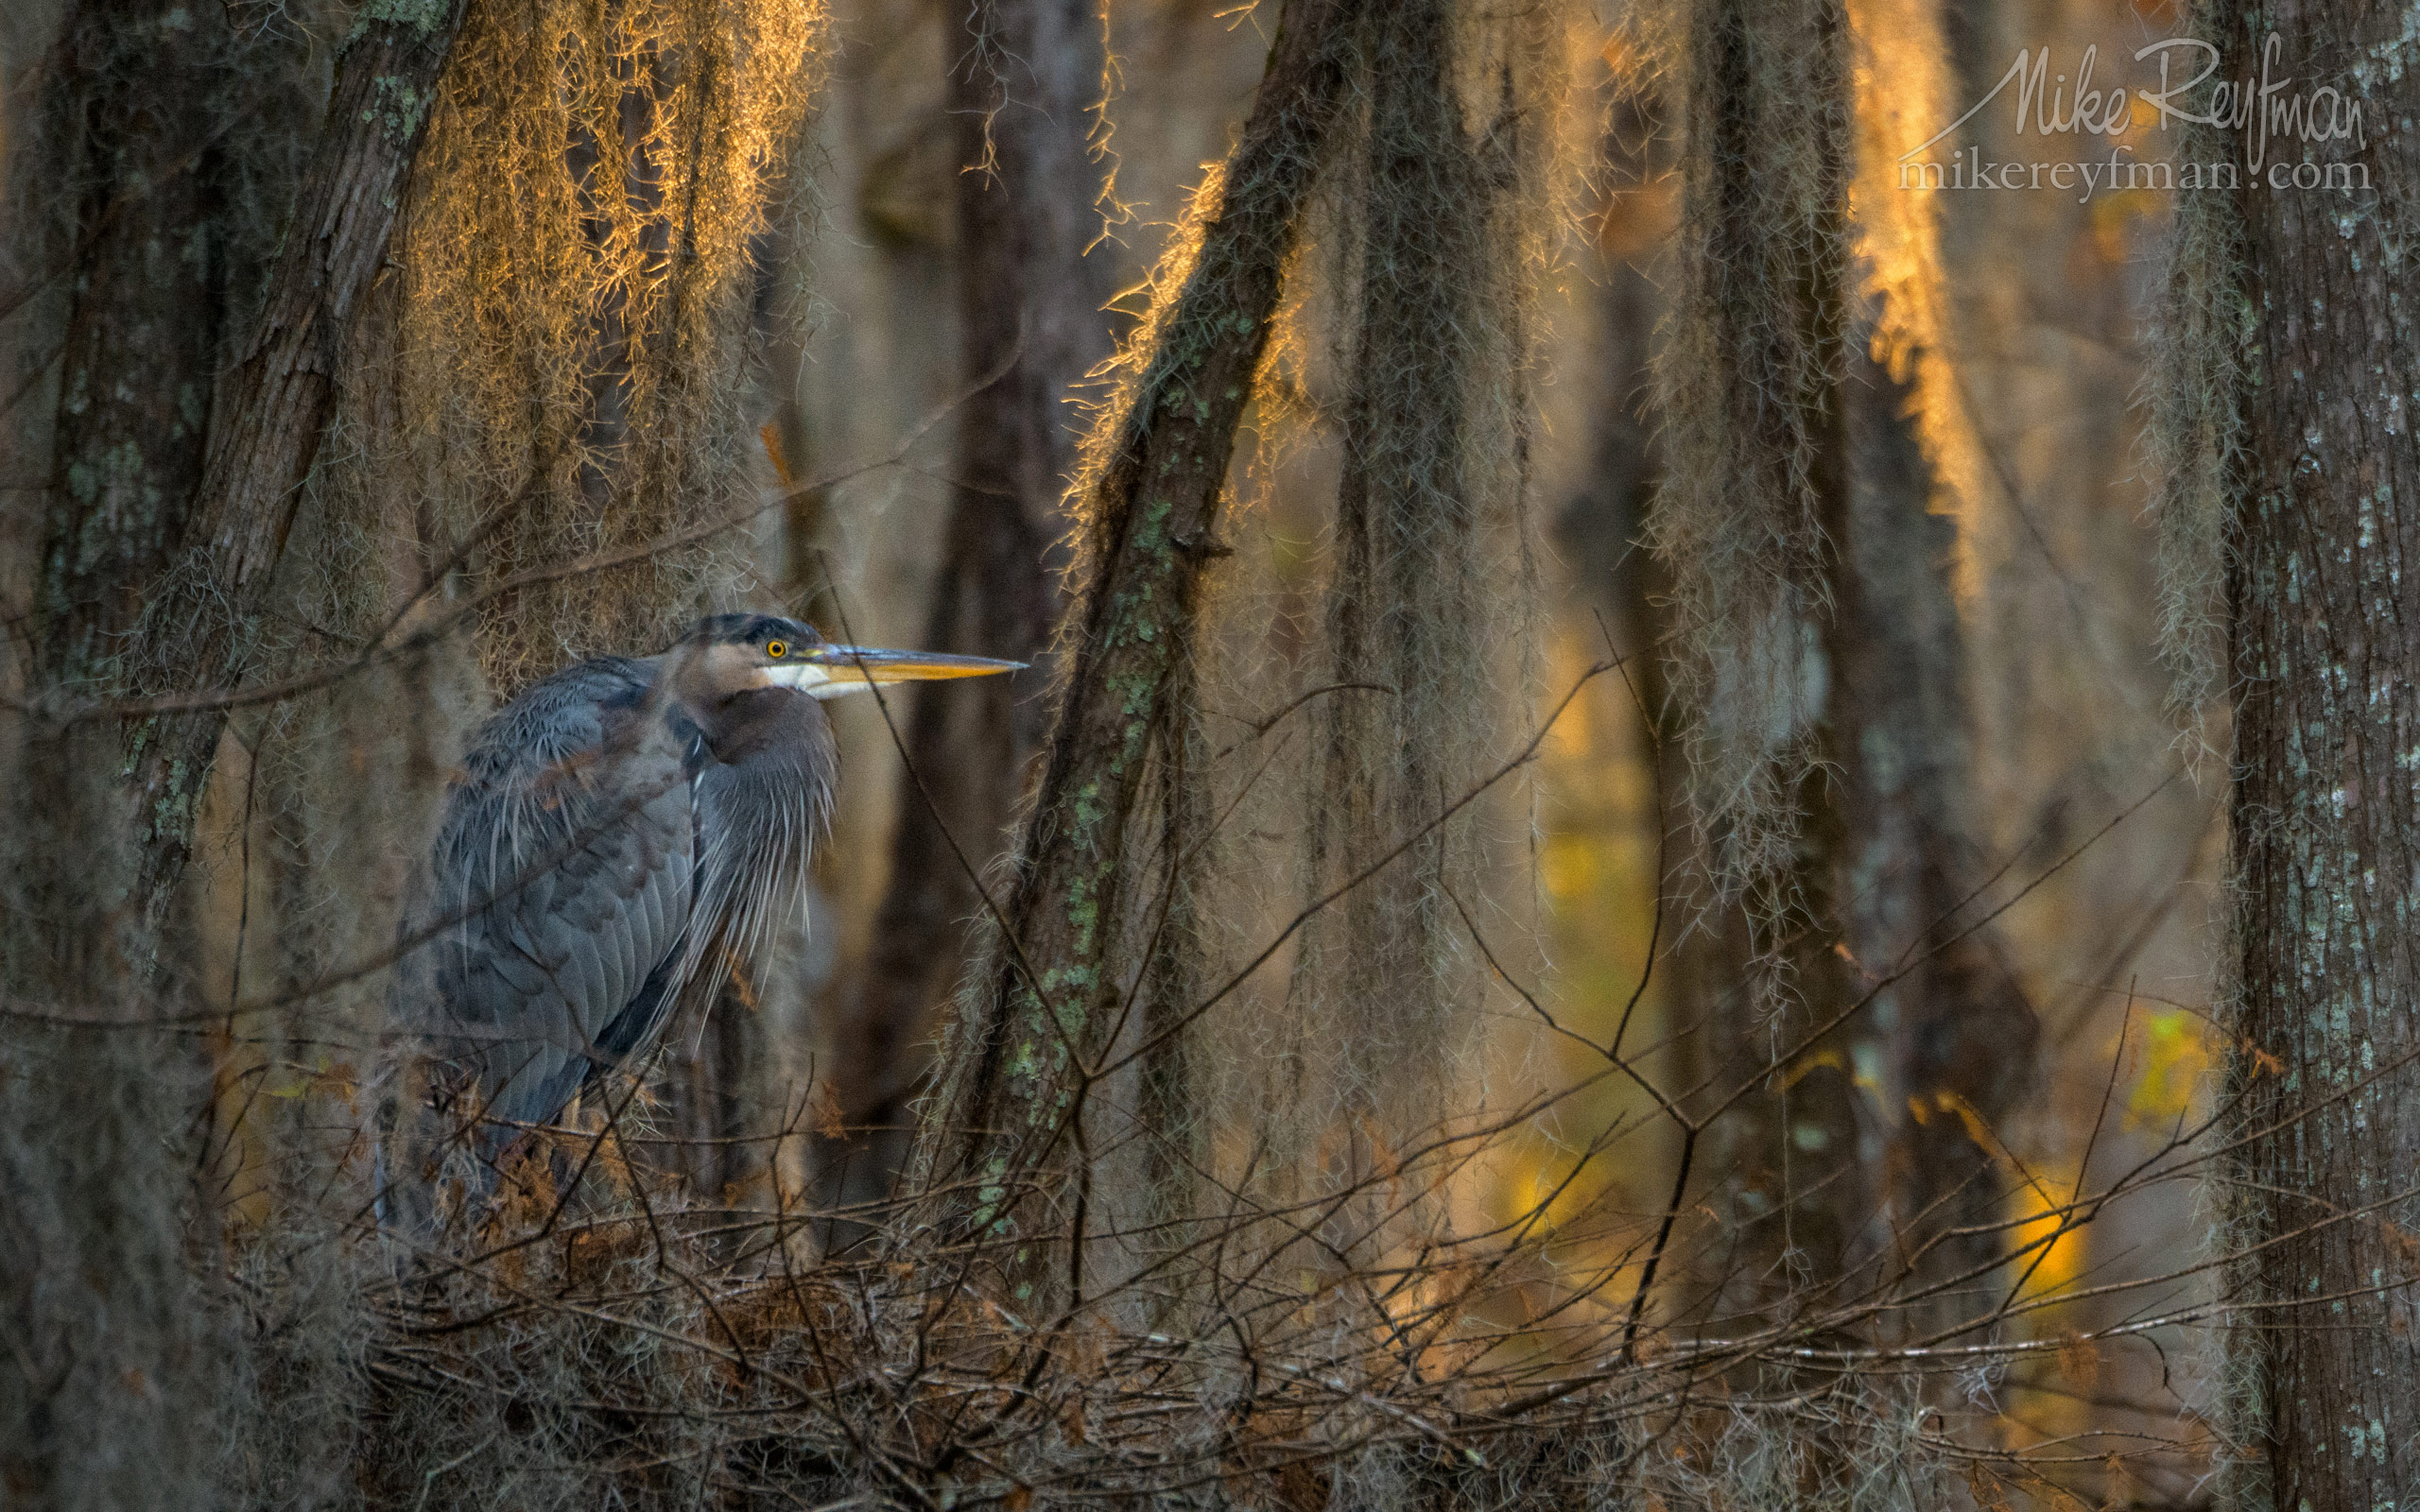 Great Blue Heron in the covered with Spanish Moss Bald Cypress Trees. Caddo Lake, Texas, US 033-LT1-50A3347.jpg - Bold Cypress and Tupelo Trees in the swamps of Atchafalaya River Basin. Caddo, Martin and Fousse Lakes. Texas/Louisiana, USA. - Mike Reyfman Photography